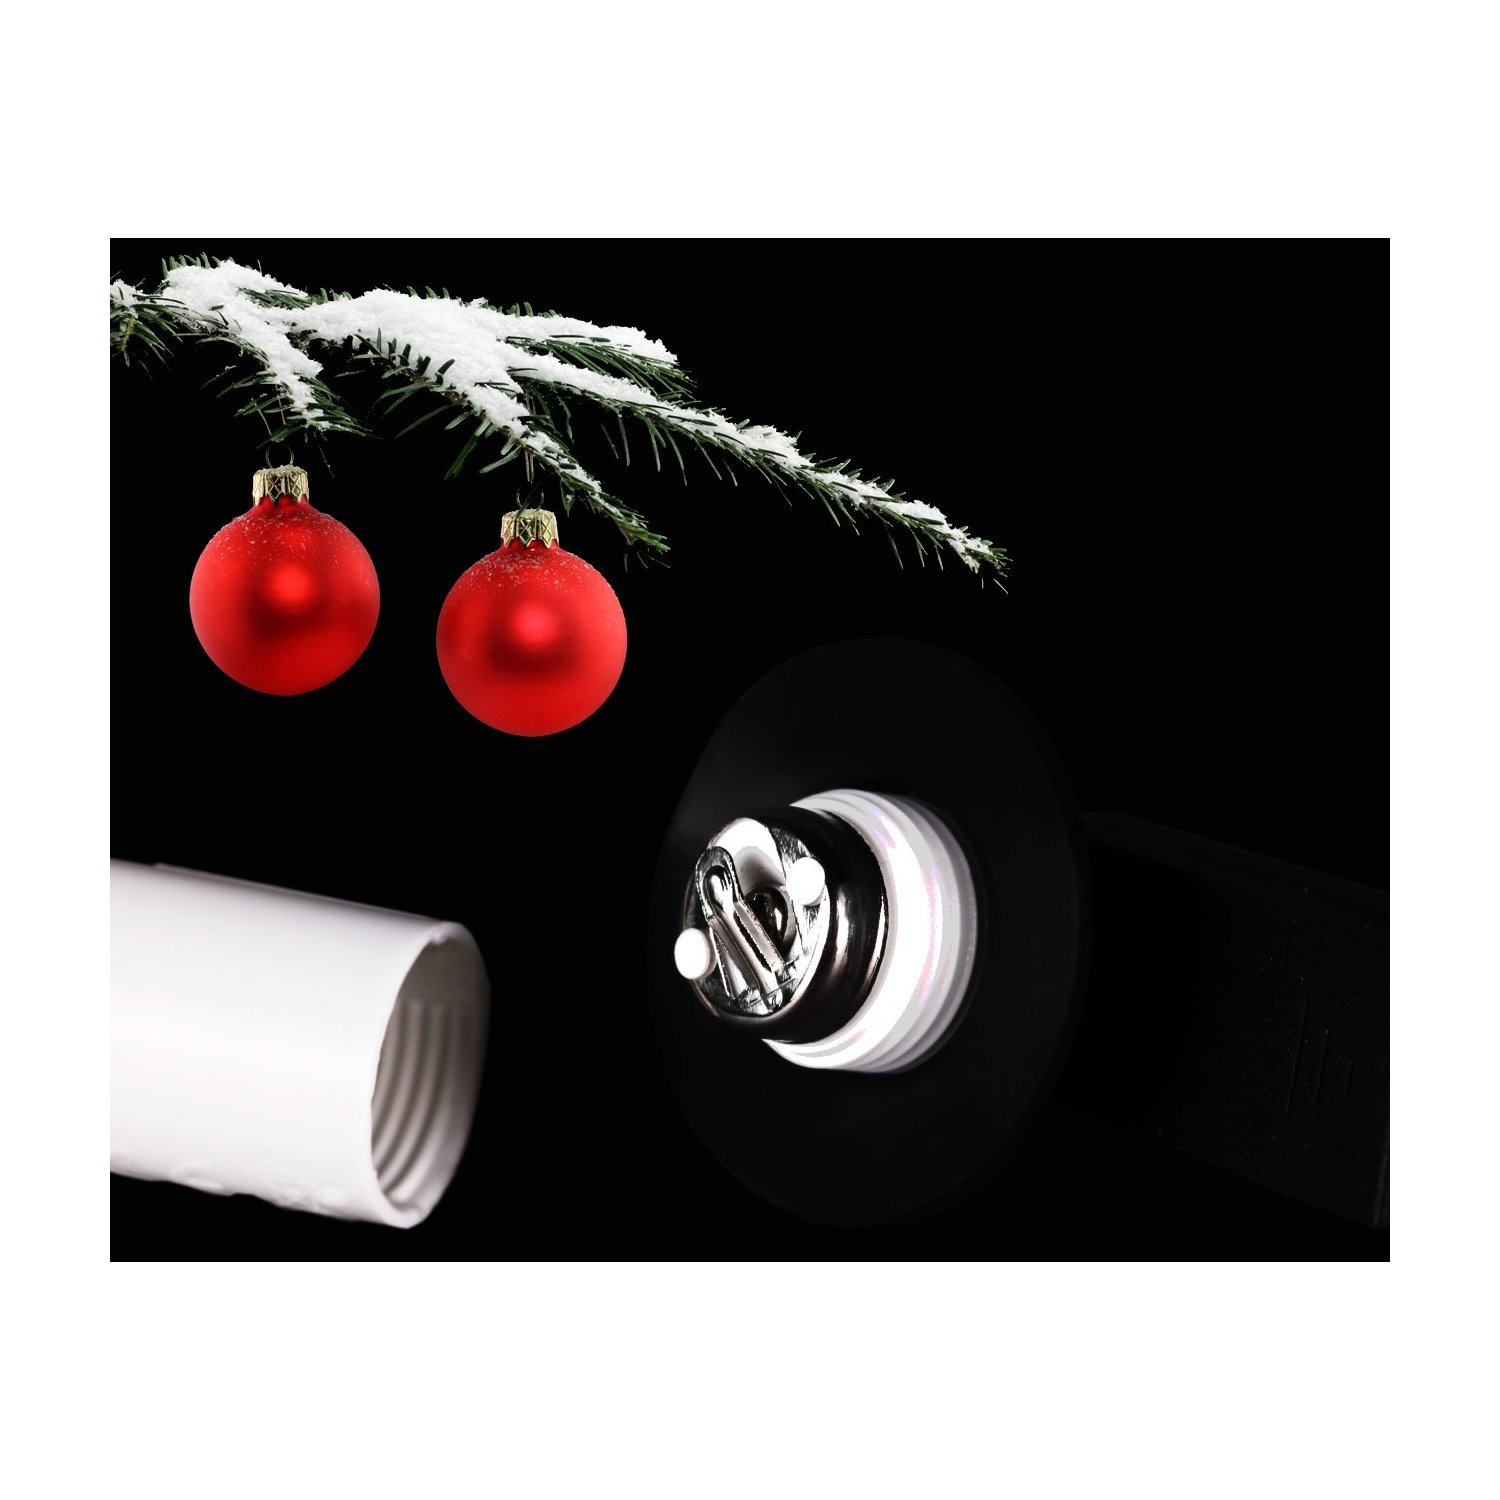 Kabellose Led Weihnachtsbeleuchtung.Rs Trade 30er Set Kabellose Led Weihnachtsbaumbeleuchtung